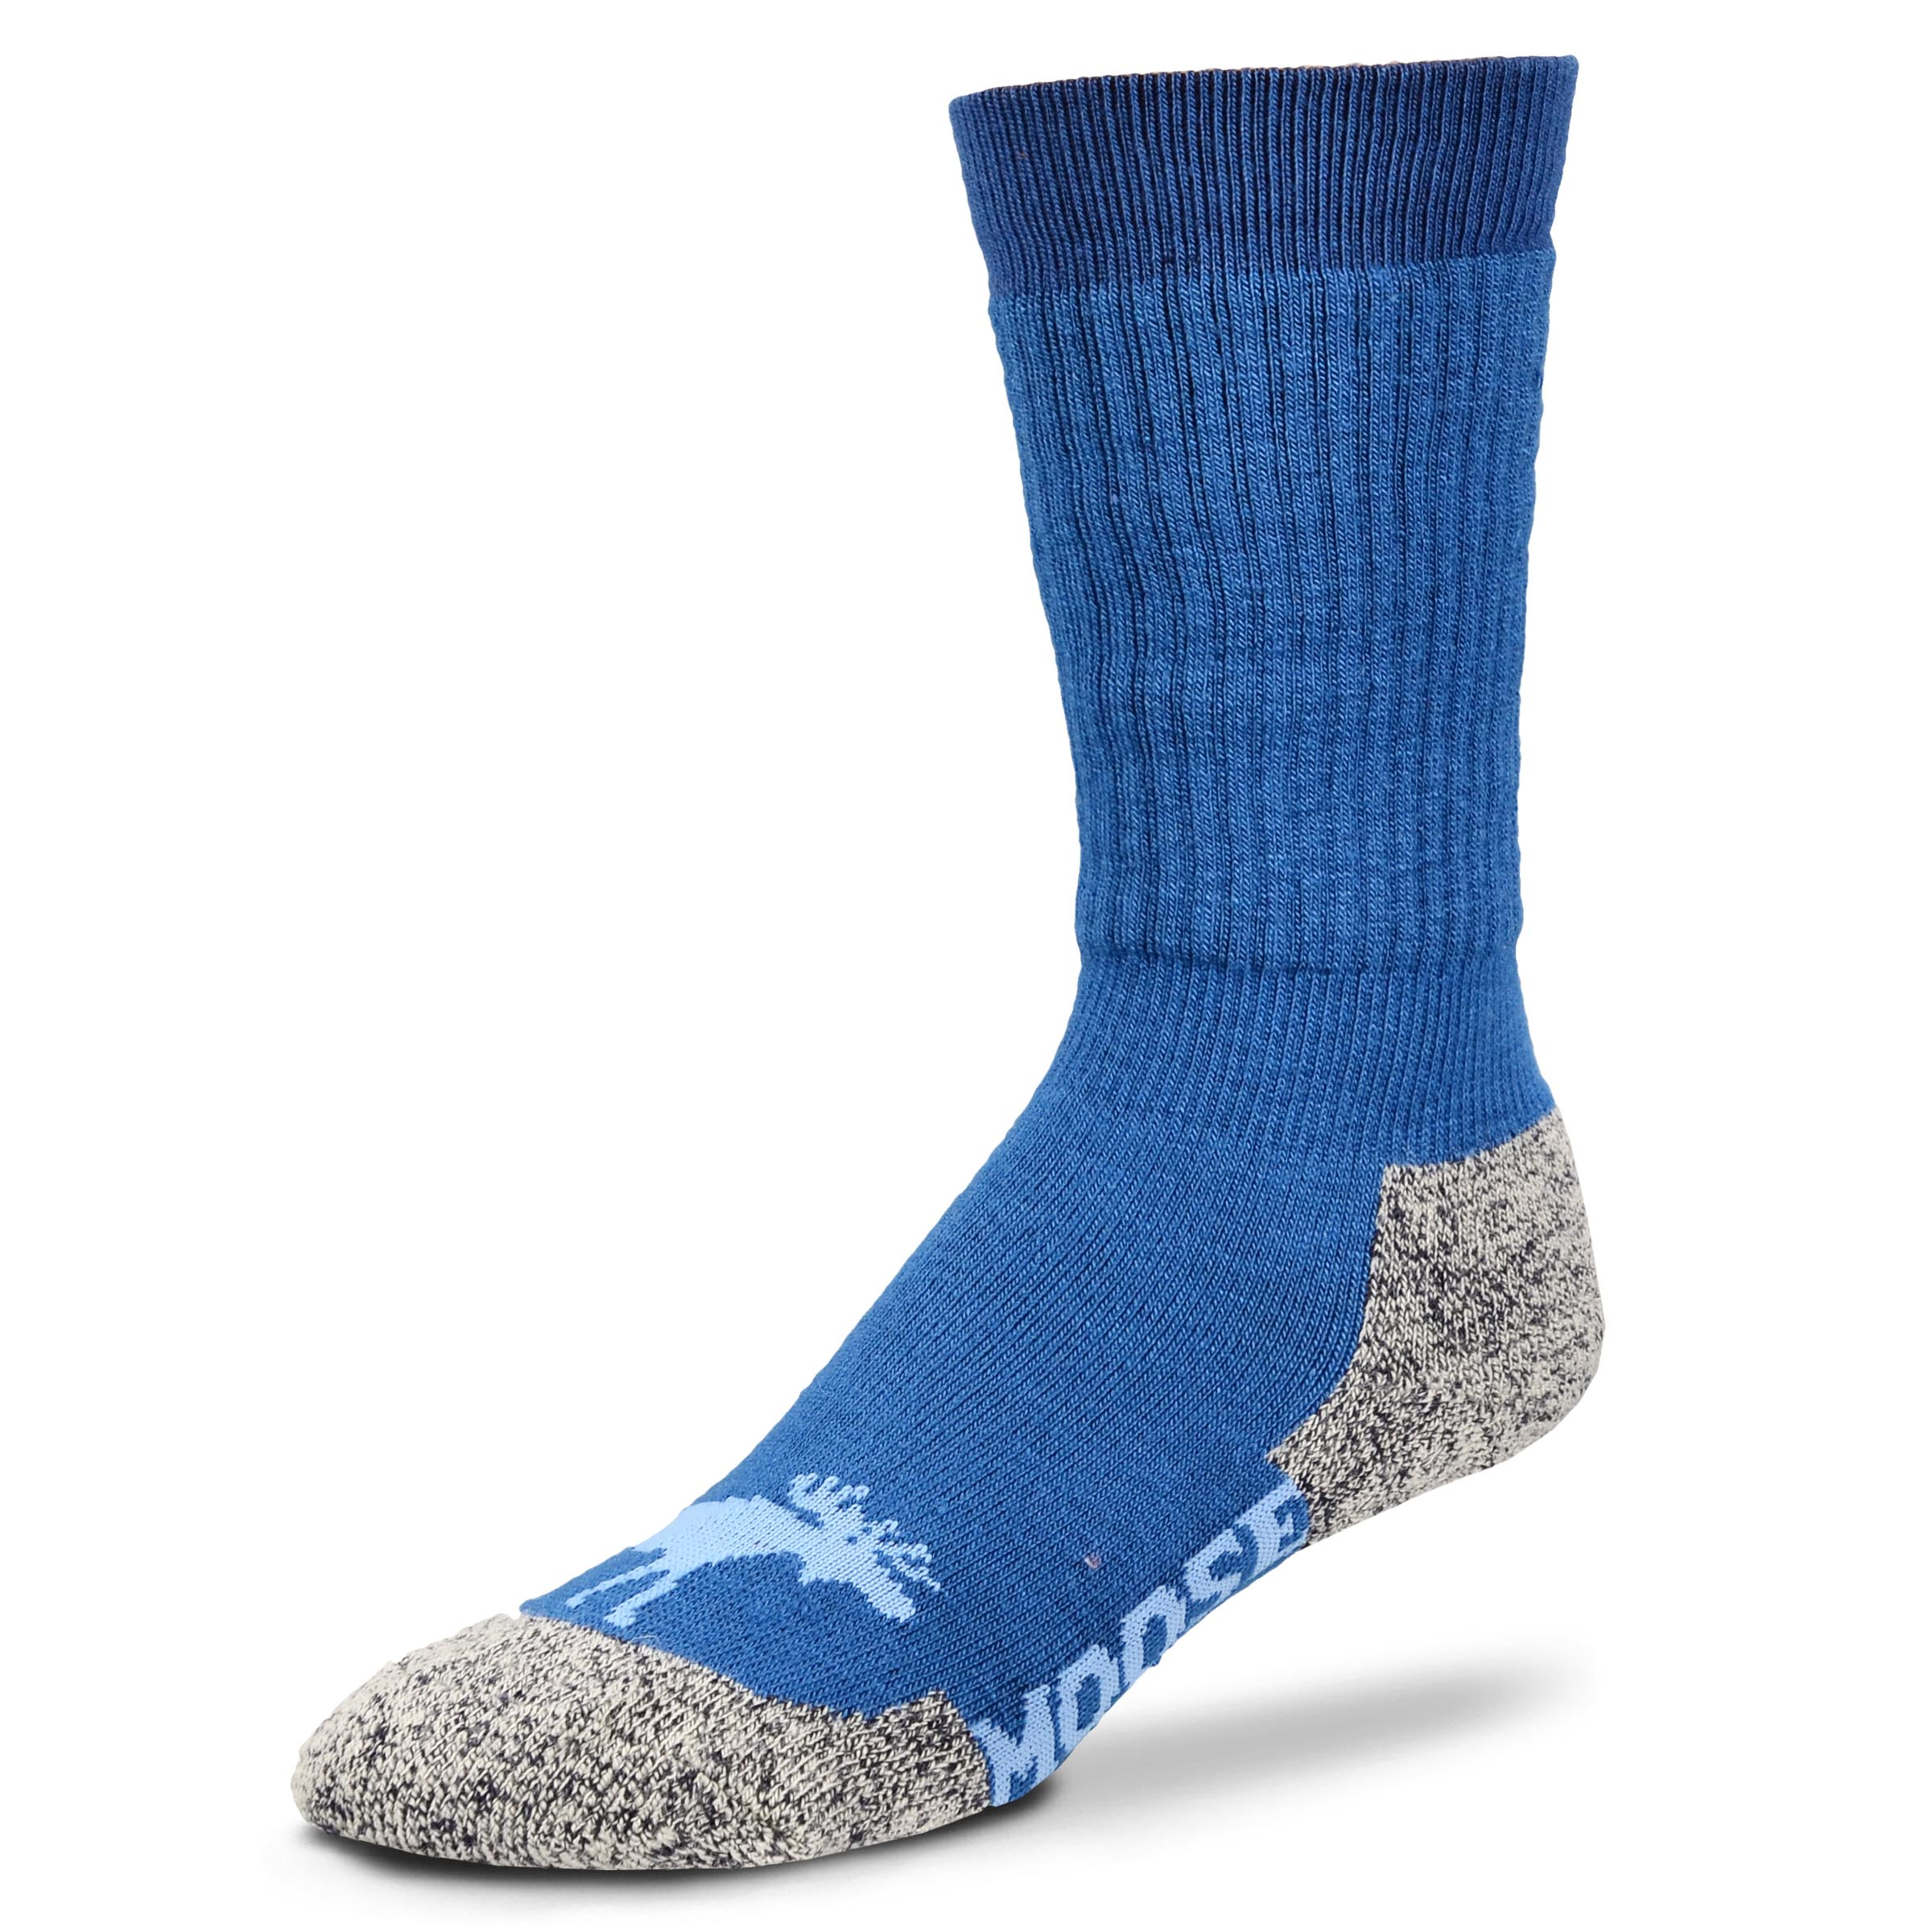 Over the Calf Trekker 2 Socks - Large